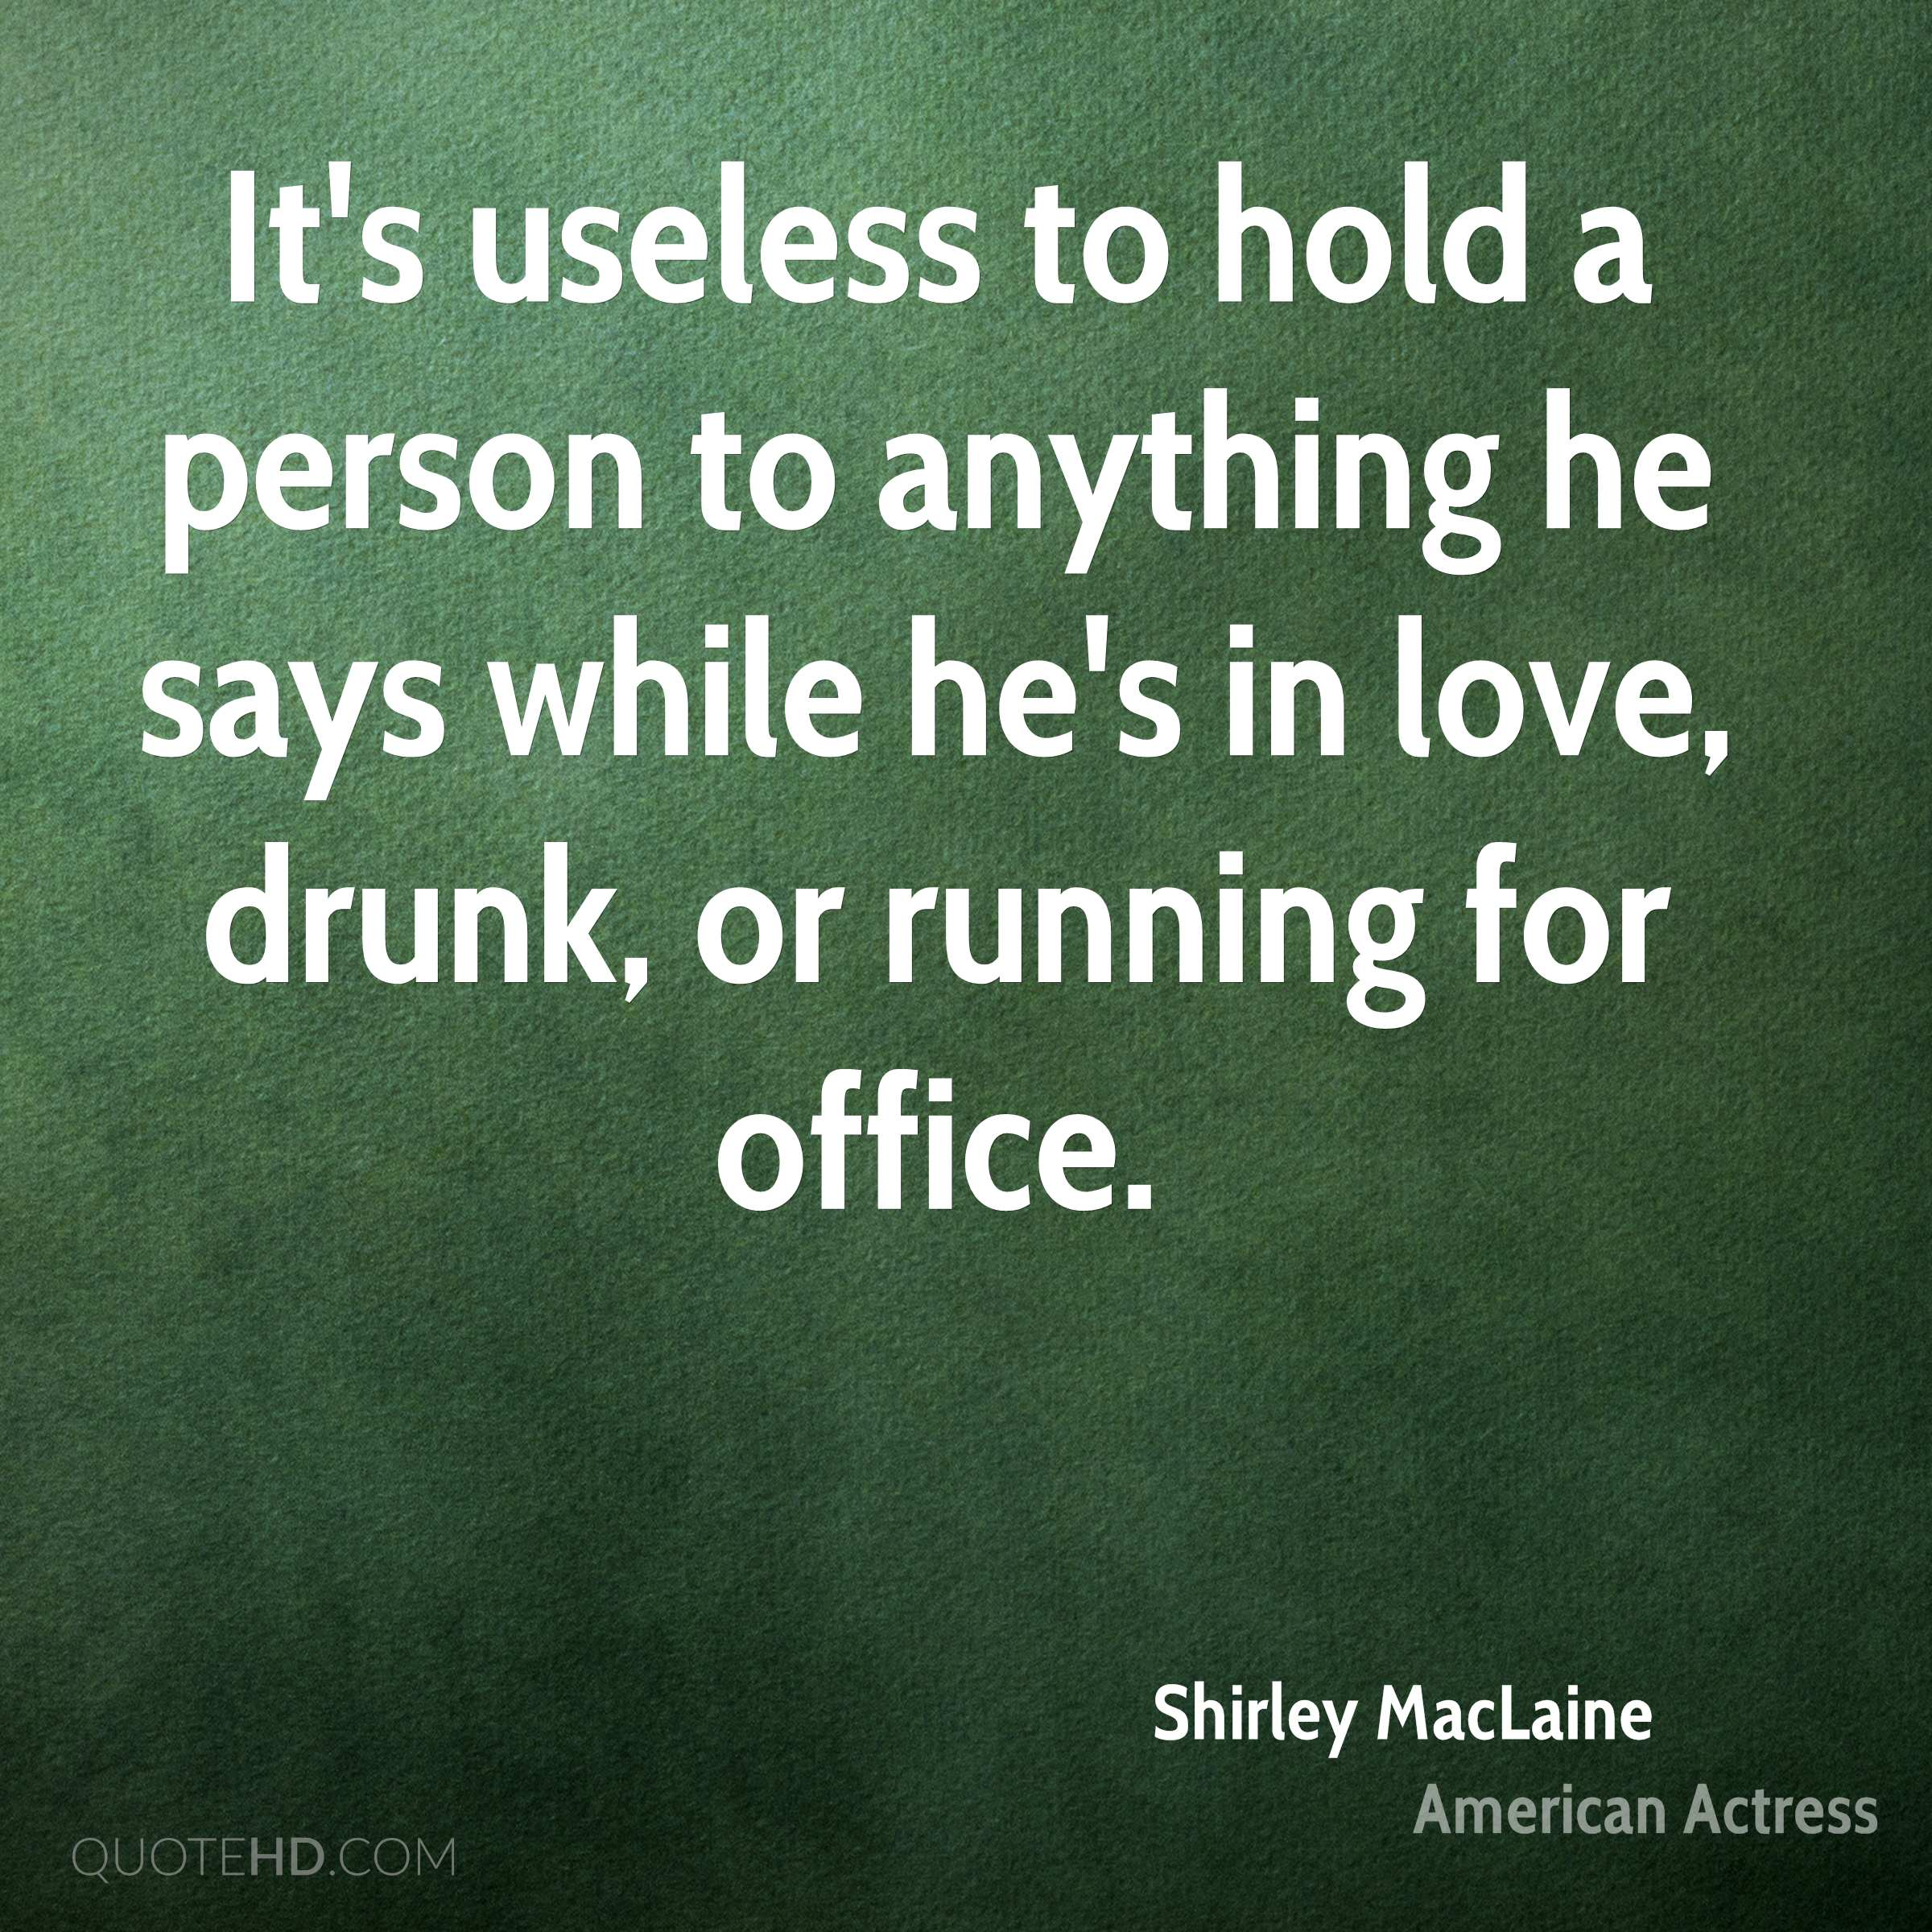 It's useless to hold a person to anything he says while he's in love, drunk, or running for office.